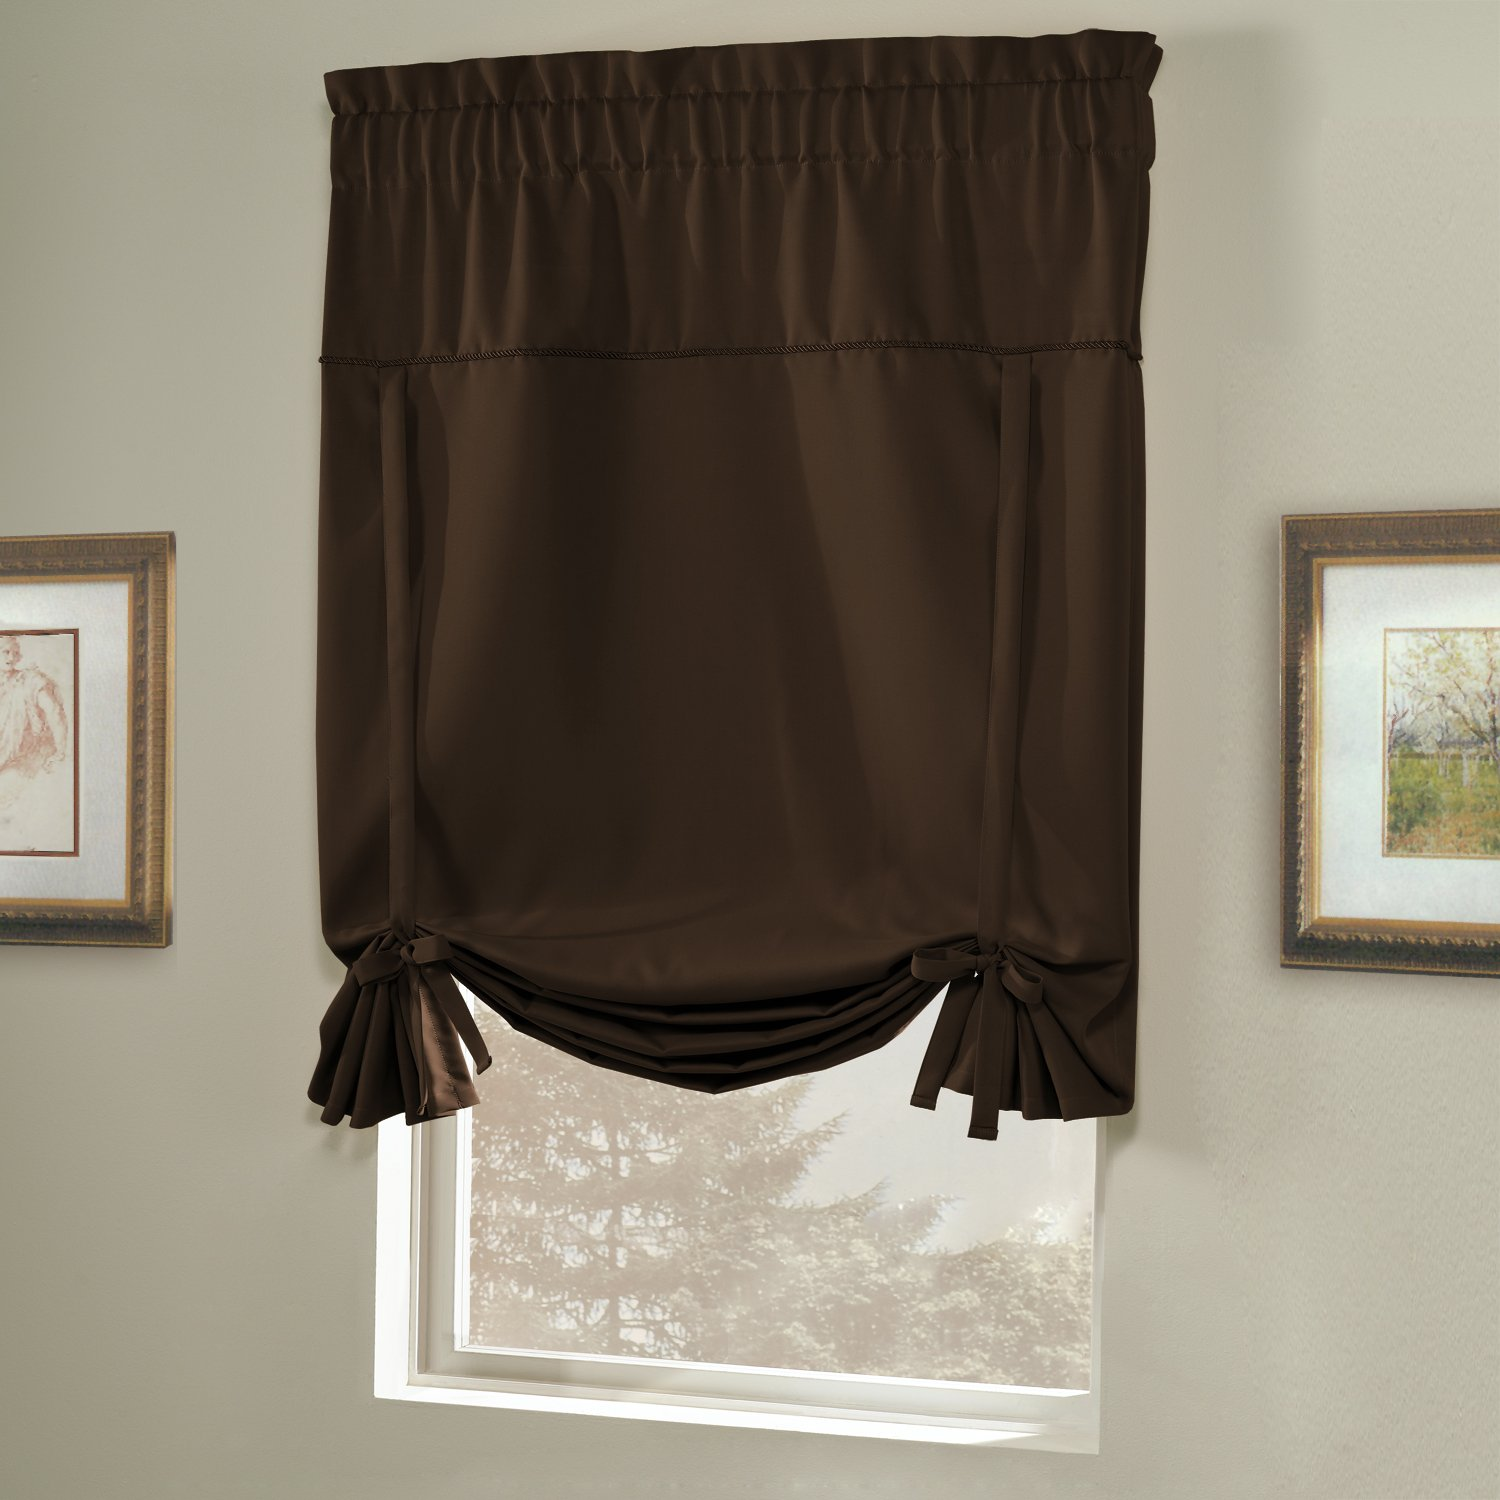 Ho how to tie balloon curtains - Amazon Com United Curtain Blackstone Blackout Tie Up Shade 40 By 63 Inch Chocolate Home Kitchen